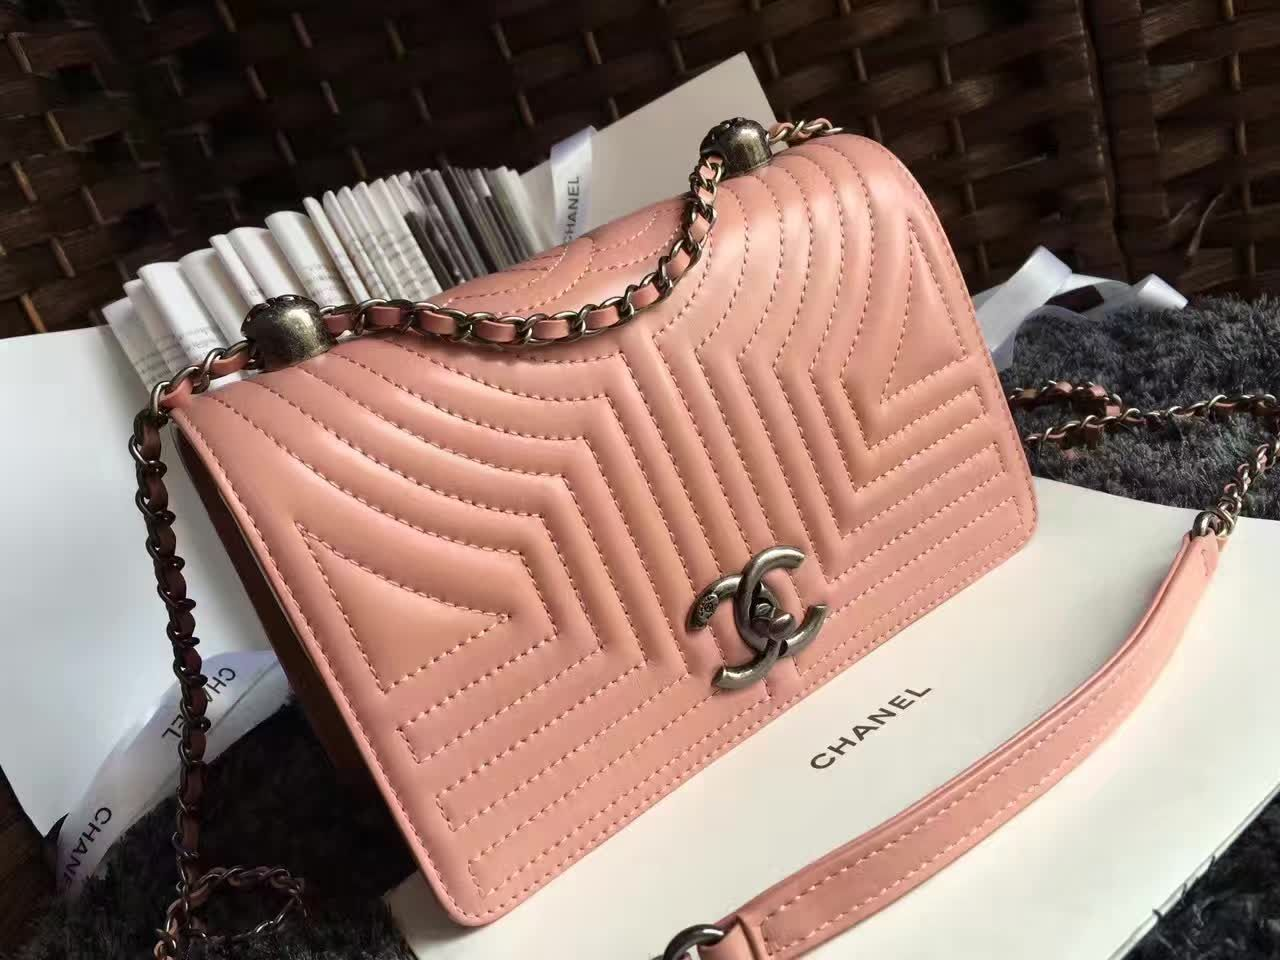 chanel Bag, ID : 63157(FORSALE:a@yybags.com), chanel preschool backpacks, chanel original bags online shop, chanel wallets online, chanel best mens briefcases, chanel purses and bags, 銈枫儯銉嶃儷, chanel brown leather handbags, chanel handmade purses, chanel hobo bags, chanel purse bag, chanel colorful backpacks, chanel purses outlet #chanelBag #chanel #chanel #trolley #backpack